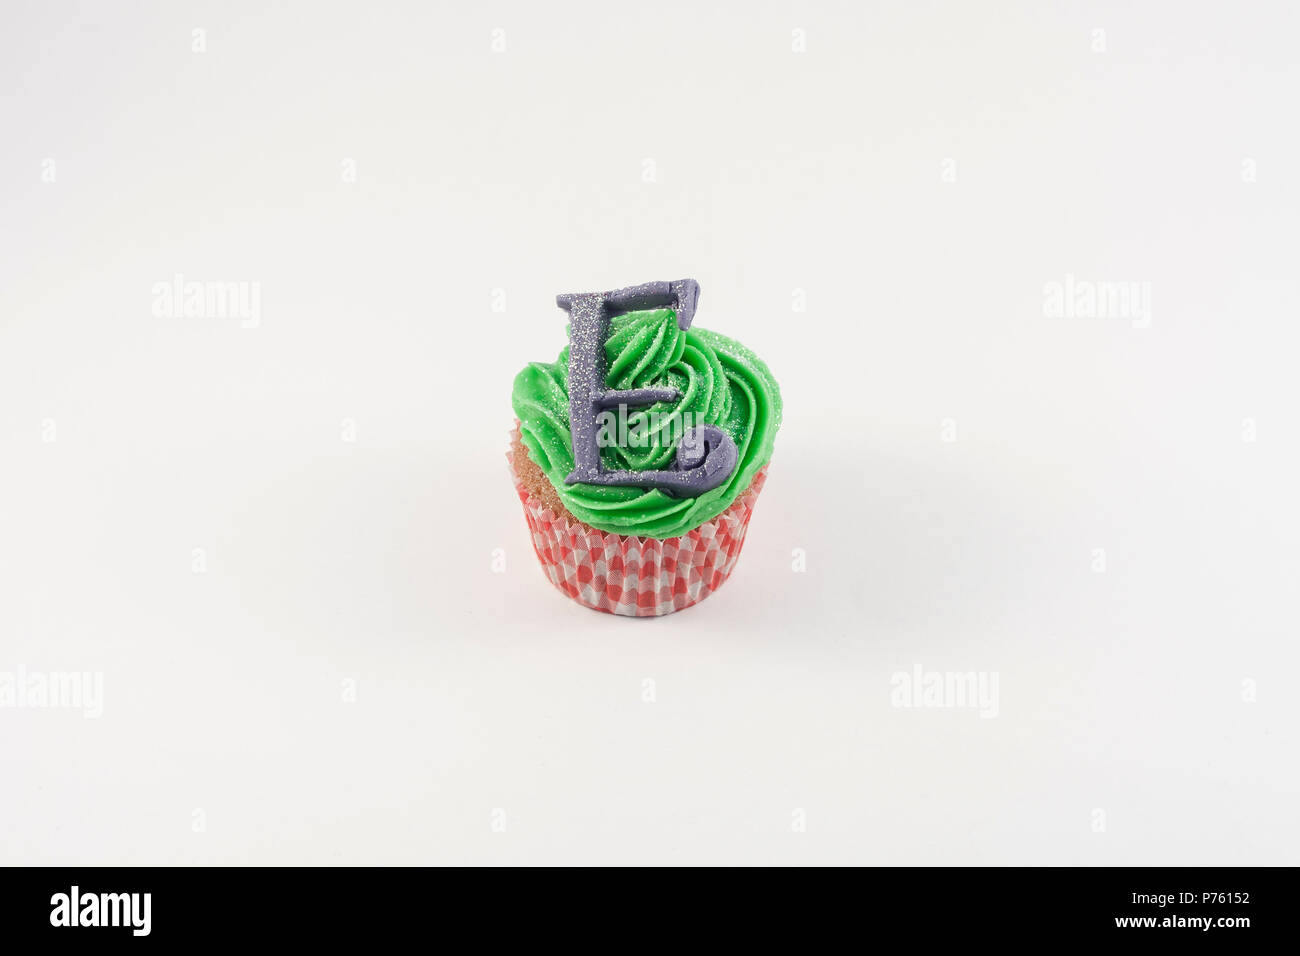 A Cupcake decorated with alice in wonderland - Stock Image